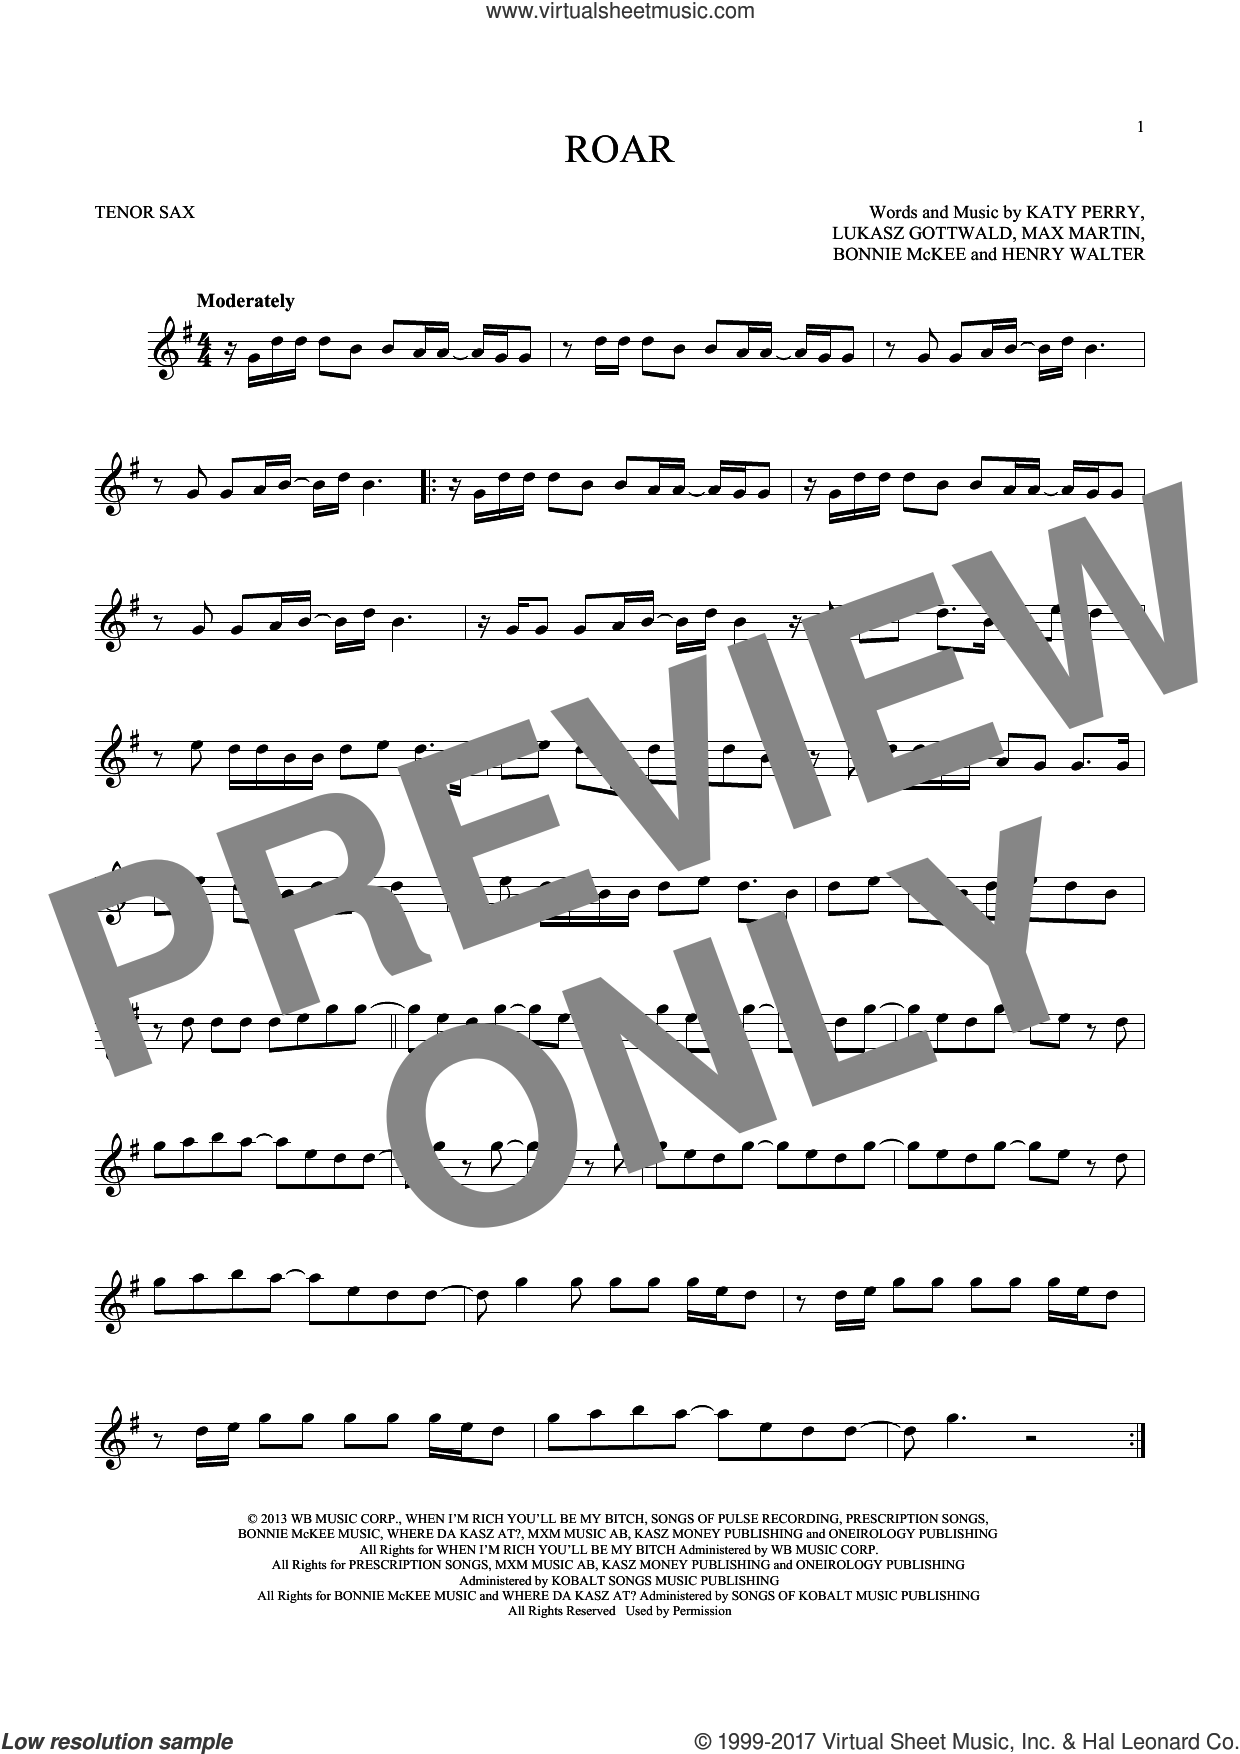 Roar sheet music for tenor saxophone solo ( Sax) by Max Martin, Bonnie McKee, Henry Walter, Katy Perry and Lukasz Gottwald. Score Image Preview.